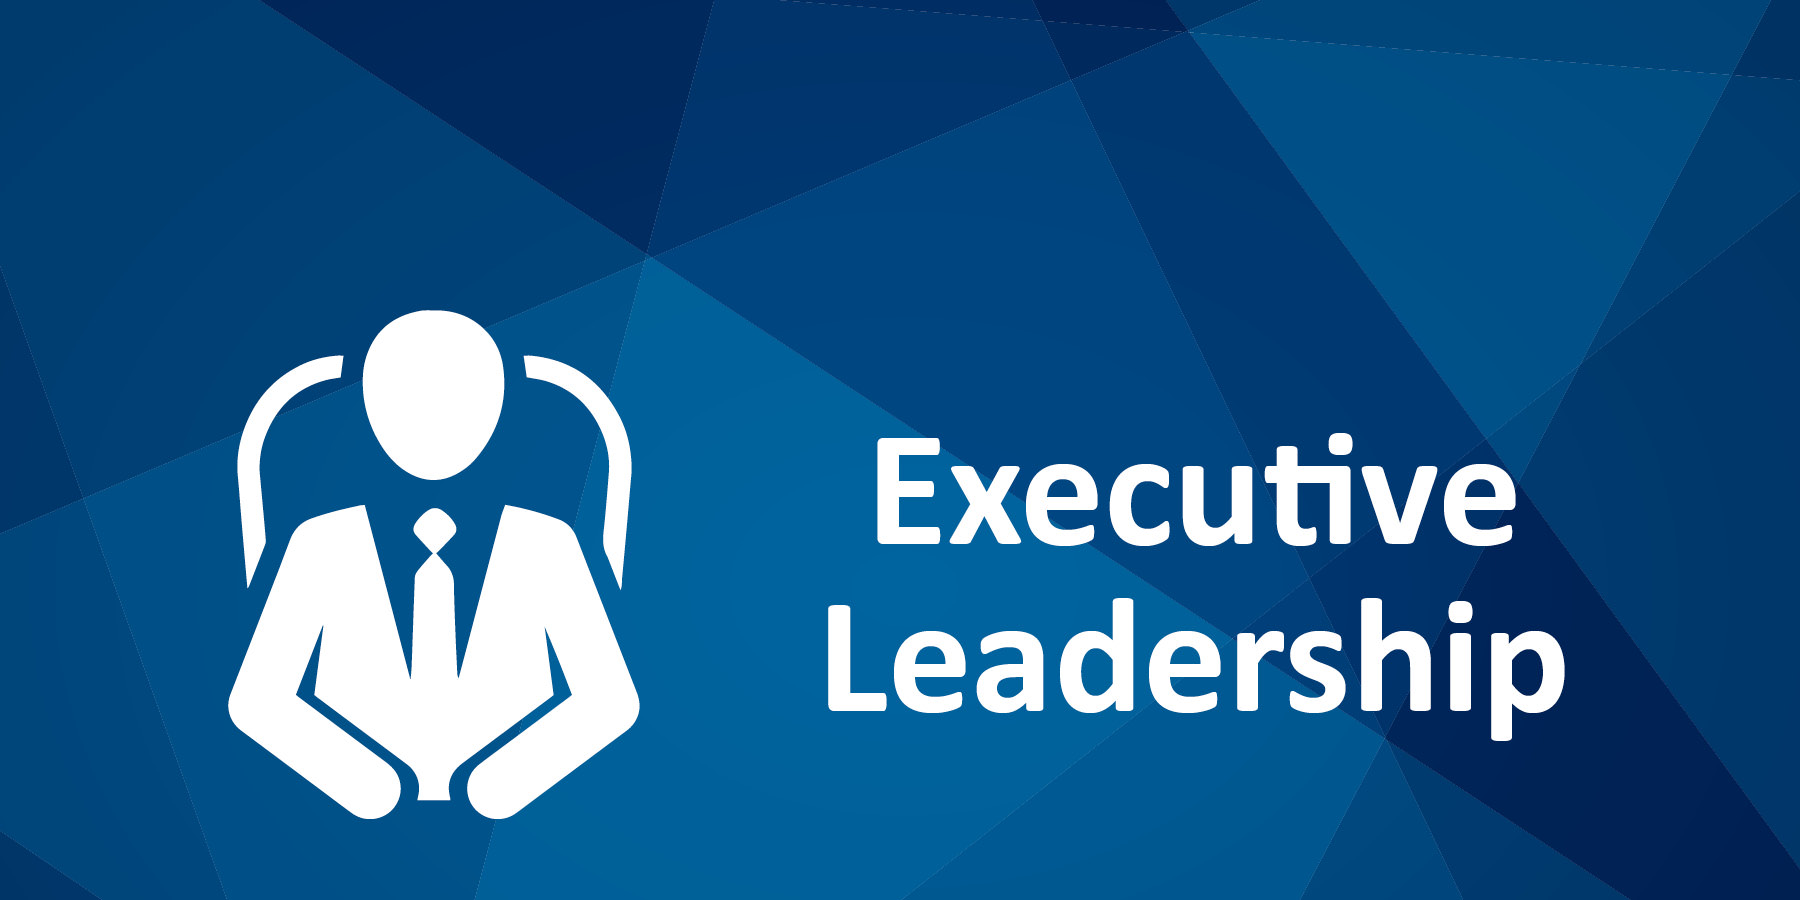 Summer 2018 Training Series Executive Leadership Ecc East